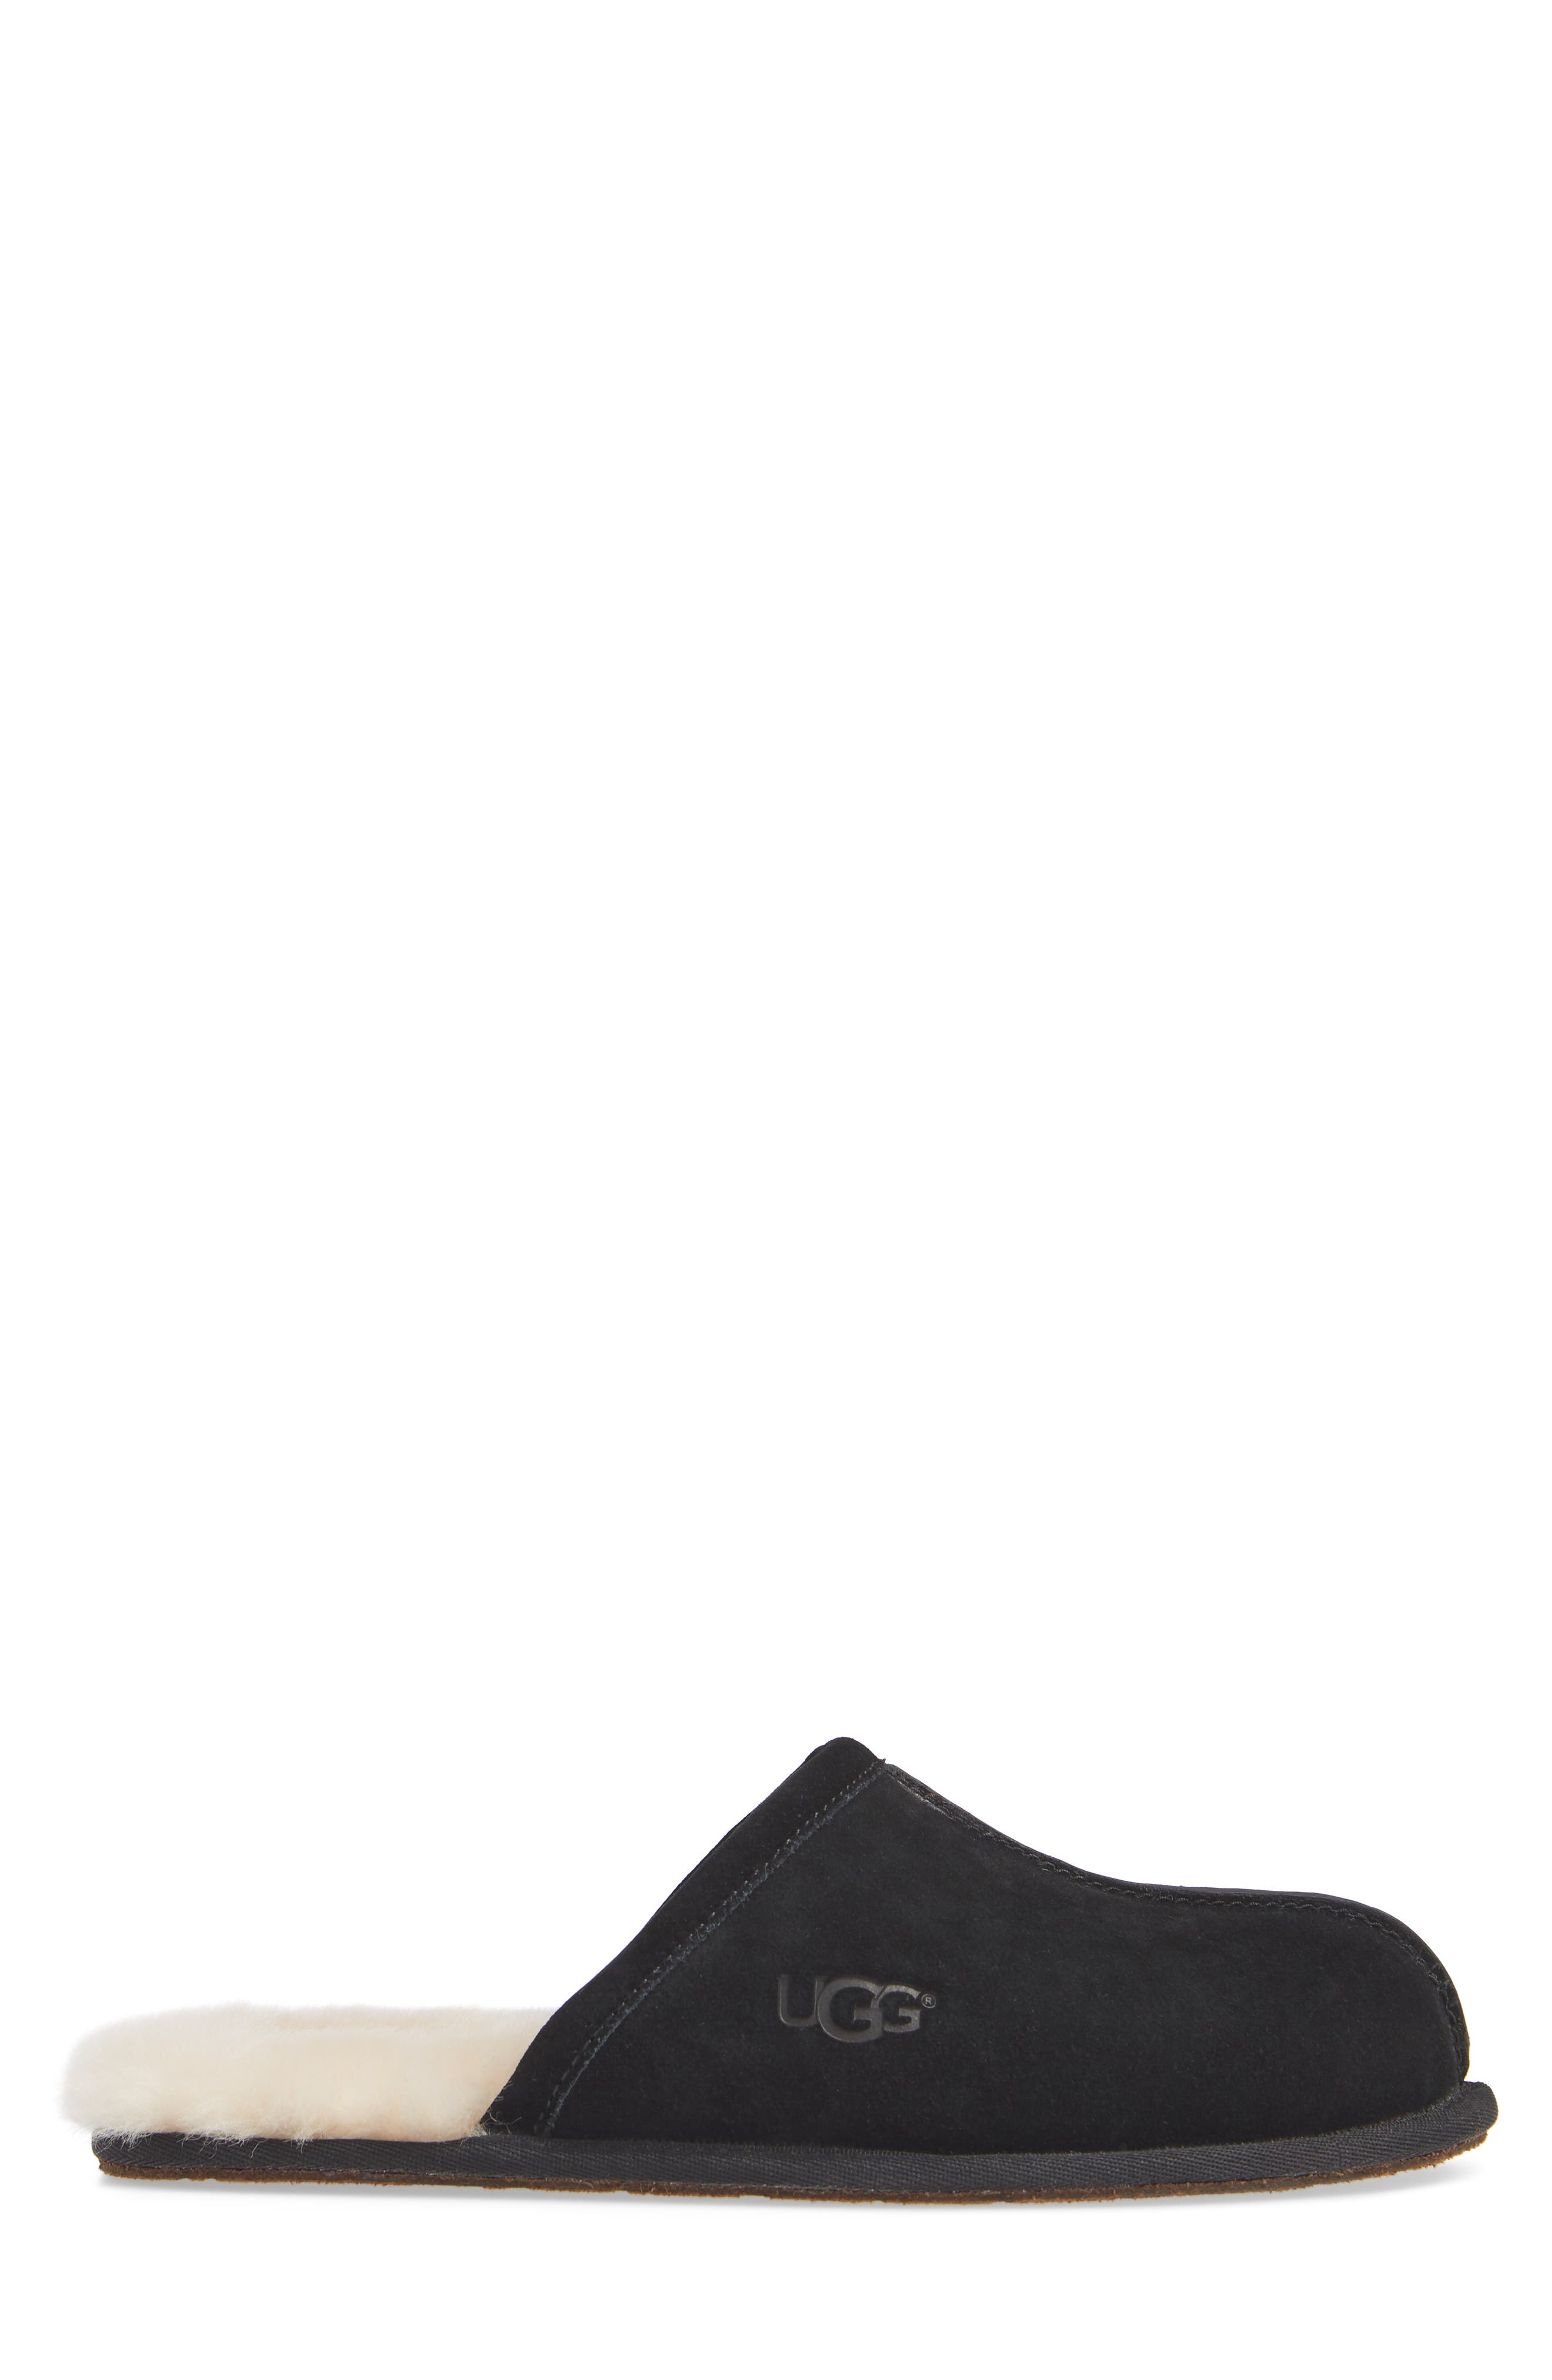 UGG<SUP>®</SUP>, Scuff Slipper, Alternate thumbnail 3, color, BLACK SUEDE